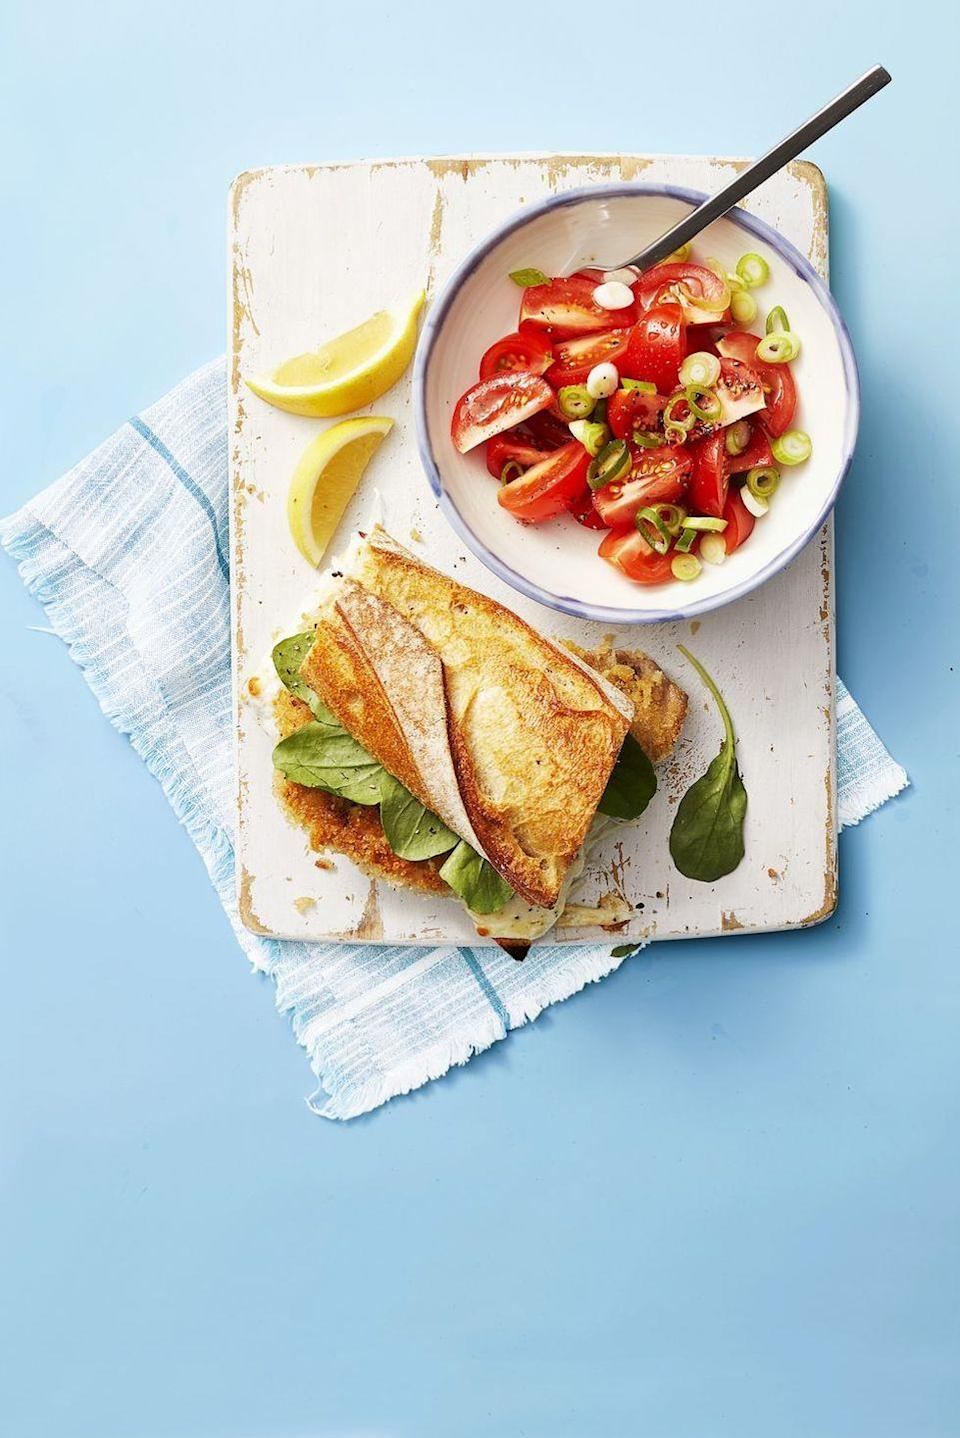 """<p>This crunchy, <a href=""""https://www.goodhousekeeping.com/food-recipes/healthy/g4081/healthy-sandwiches/"""" rel=""""nofollow noopener"""" target=""""_blank"""" data-ylk=""""slk:cheesy sandwich"""" class=""""link rapid-noclick-resp"""">cheesy sandwich</a> is the ultimate grab-and-go dinner and is ready in only 25 minutes!</p><p><em><a href=""""https://www.goodhousekeeping.com/food-recipes/easy/a27543087/pork-milanese-sandwich-with-tomato-salad-recipe/"""" rel=""""nofollow noopener"""" target=""""_blank"""" data-ylk=""""slk:Get the recipe for Pork Milanese Sandwich with Tomato Salad »"""" class=""""link rapid-noclick-resp"""">Get the recipe for Pork Milanese Sandwich with Tomato Salad »</a></em></p>"""